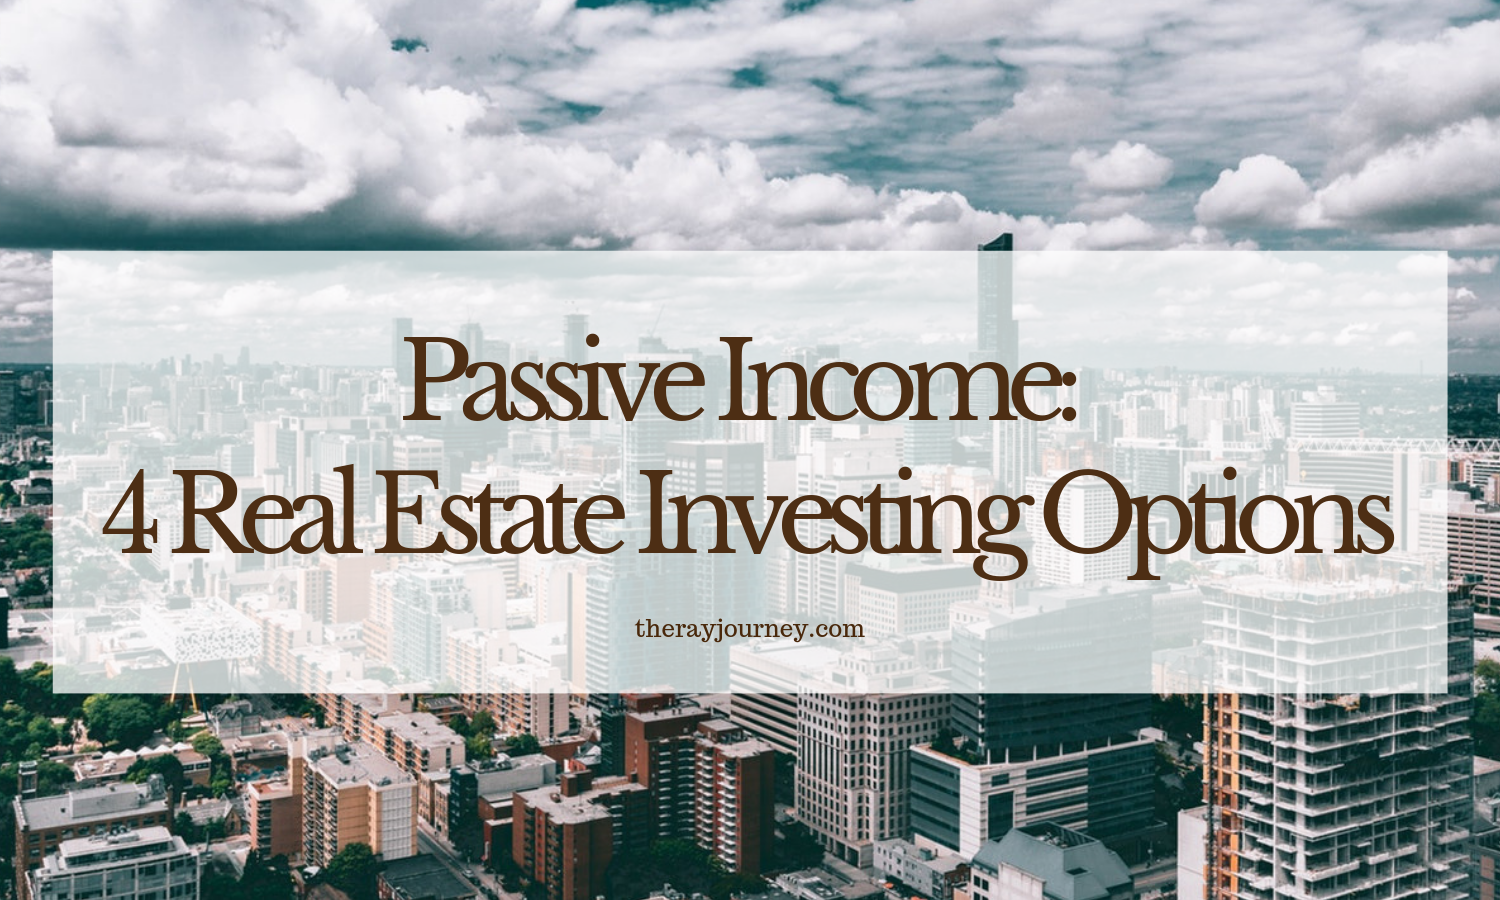 Passive Income And 4 Real Estate Investing Options